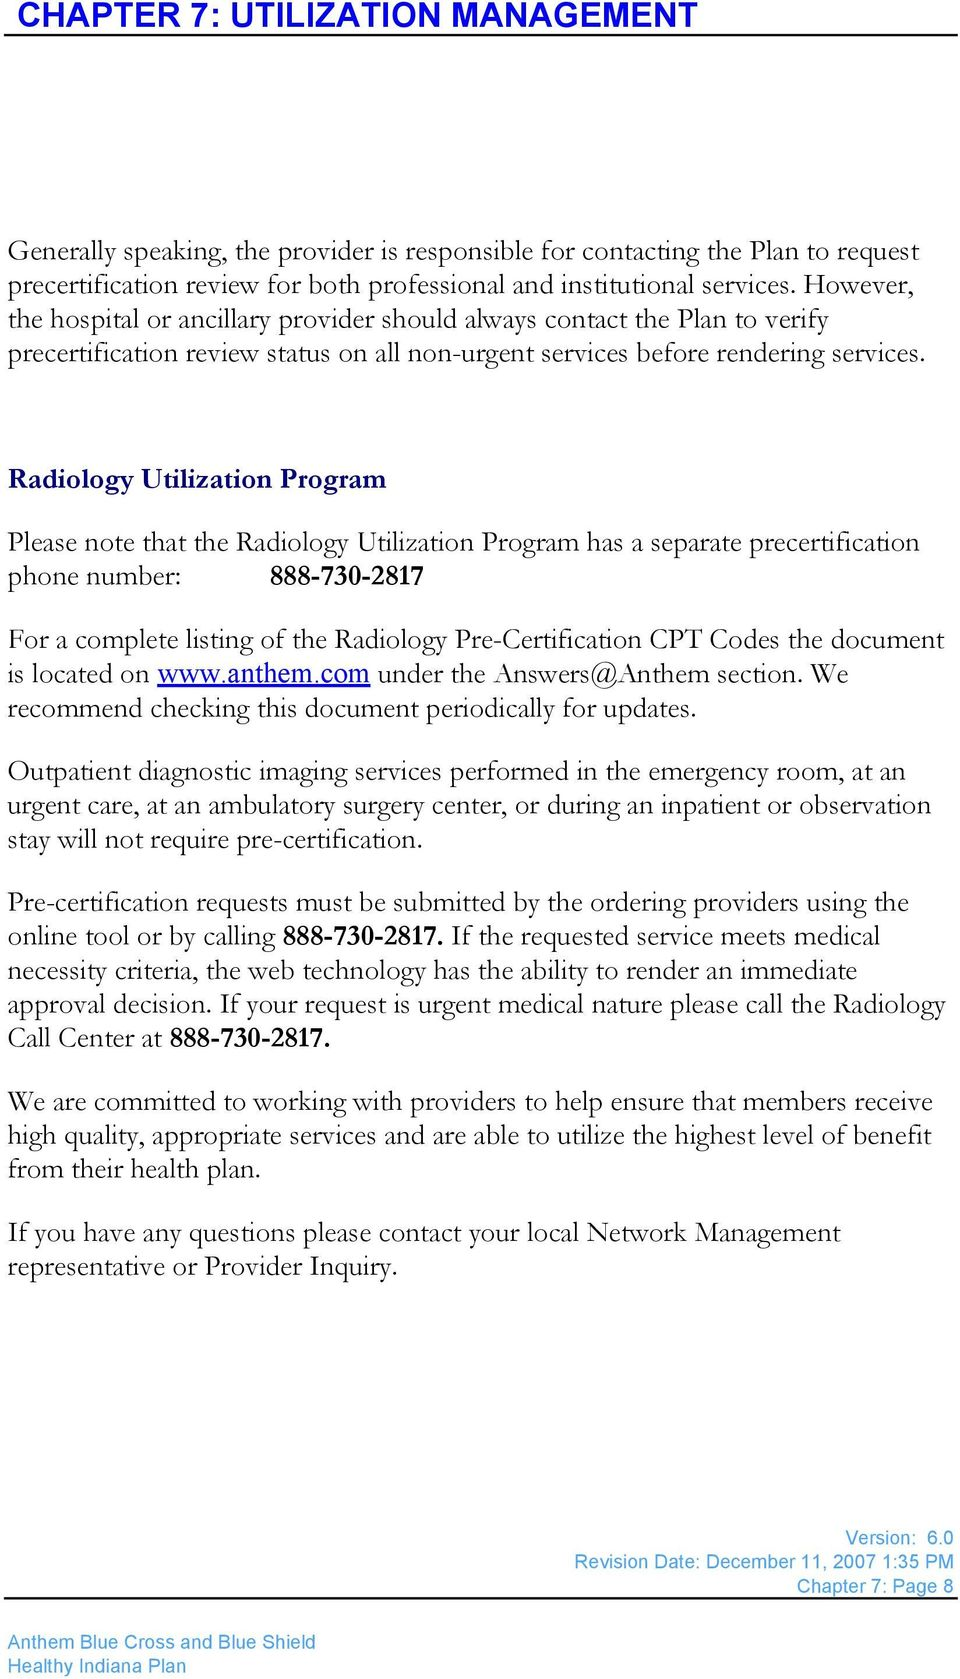 Radiology Utilization Program Please note that the Radiology Utilization Program has a separate precertification phone number: 888-730-2817 For a complete listing of the Radiology Pre-Certification